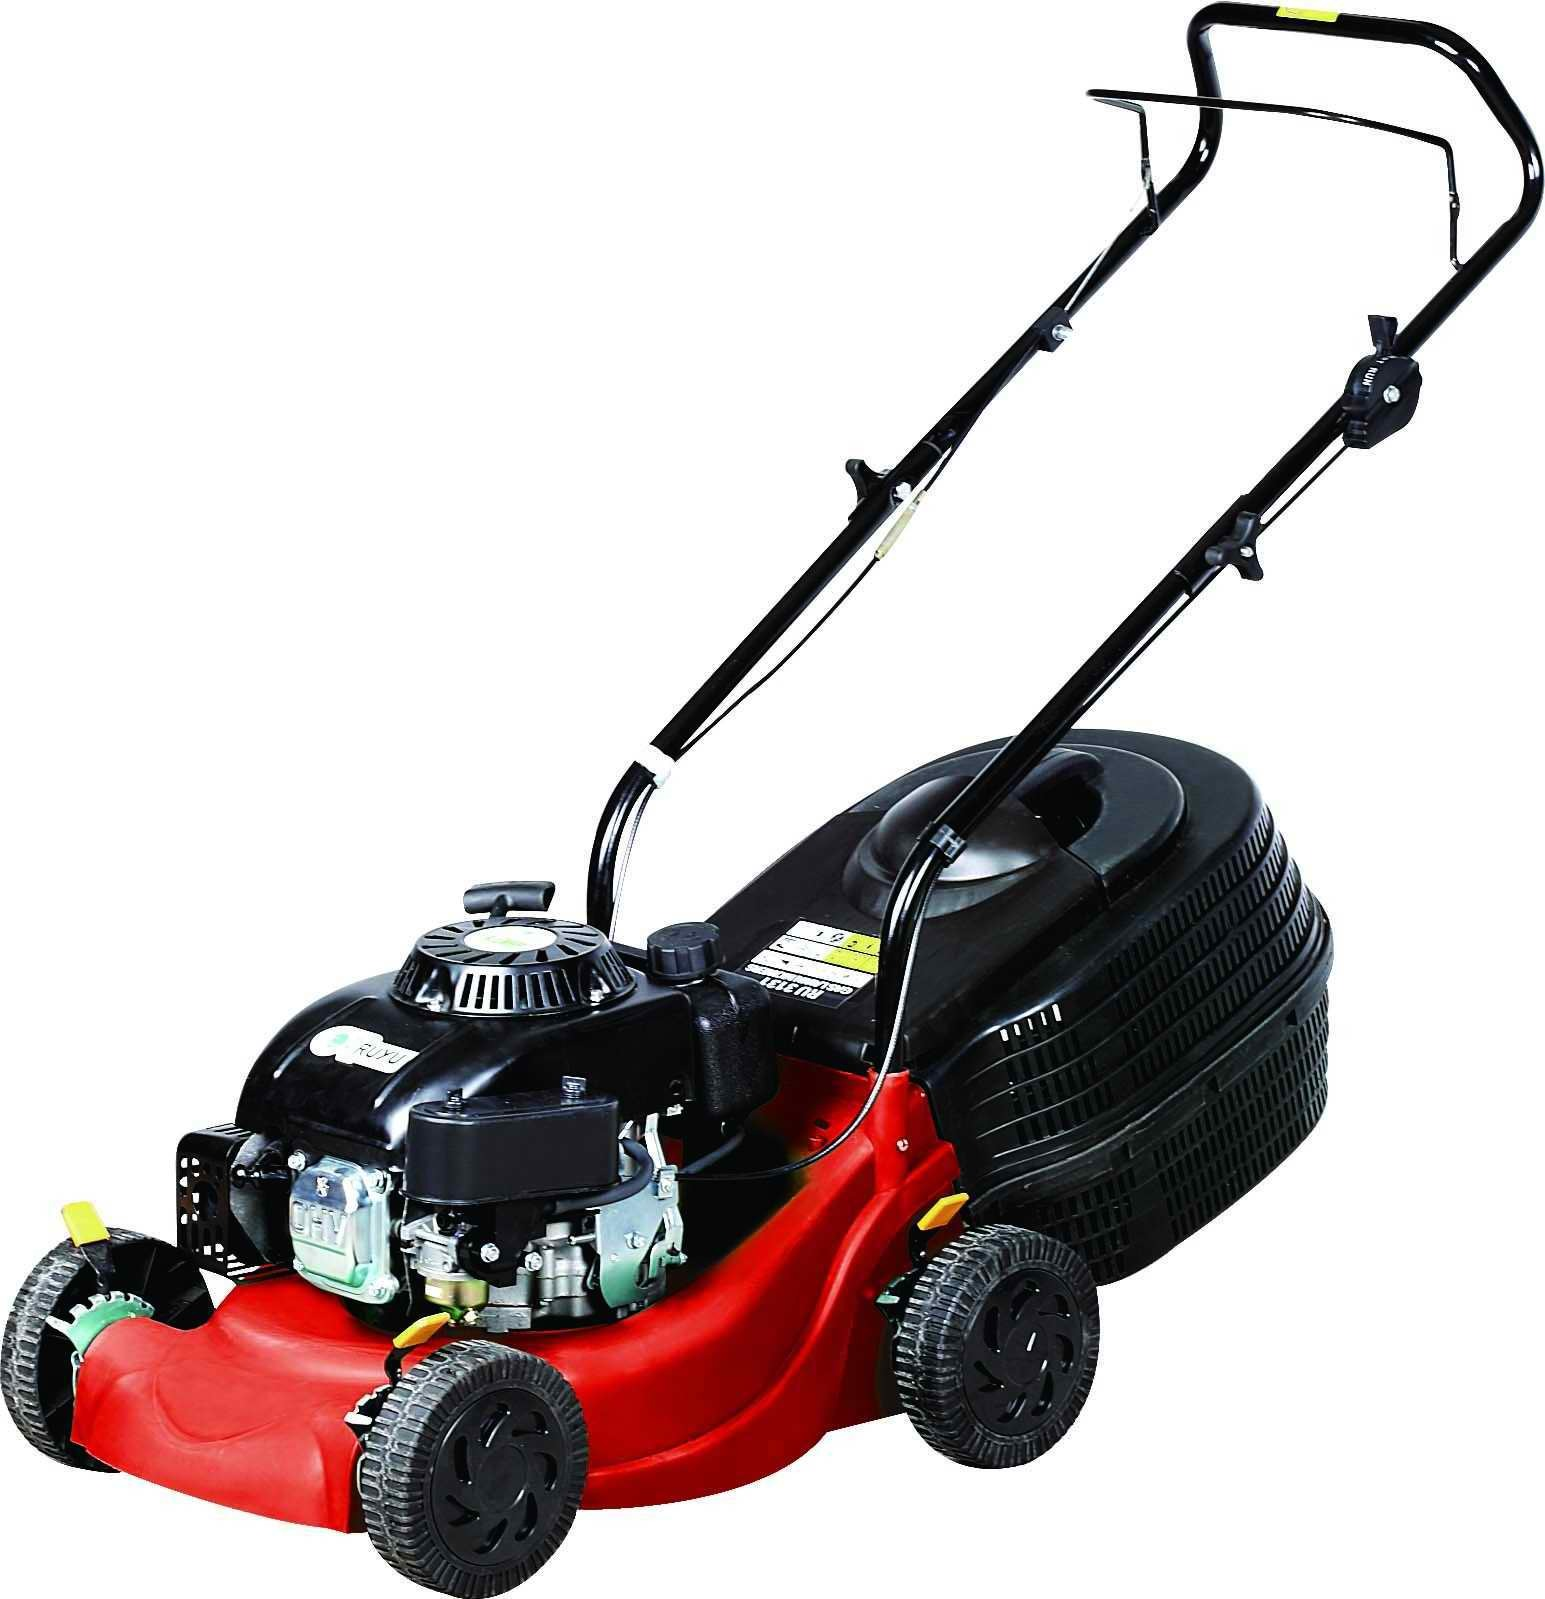 Lawn Mower Forum - Lawn Mowers, Lawn Tractors  Lawn Care Forum